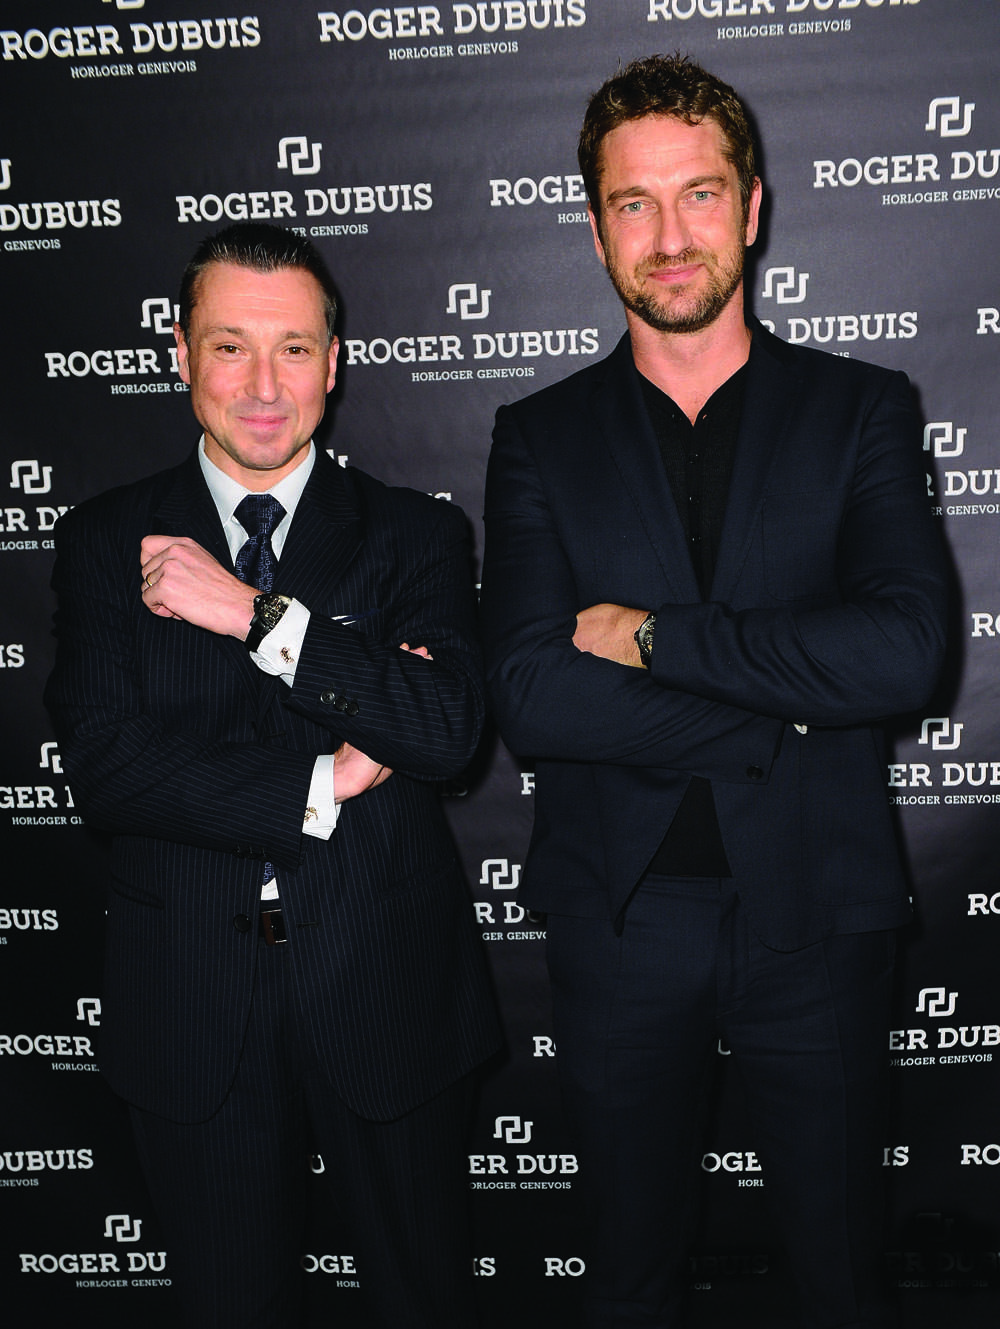 Roger Dubuis Booth At The 23rd Salon International De La Haute Horlogerie: Day 1